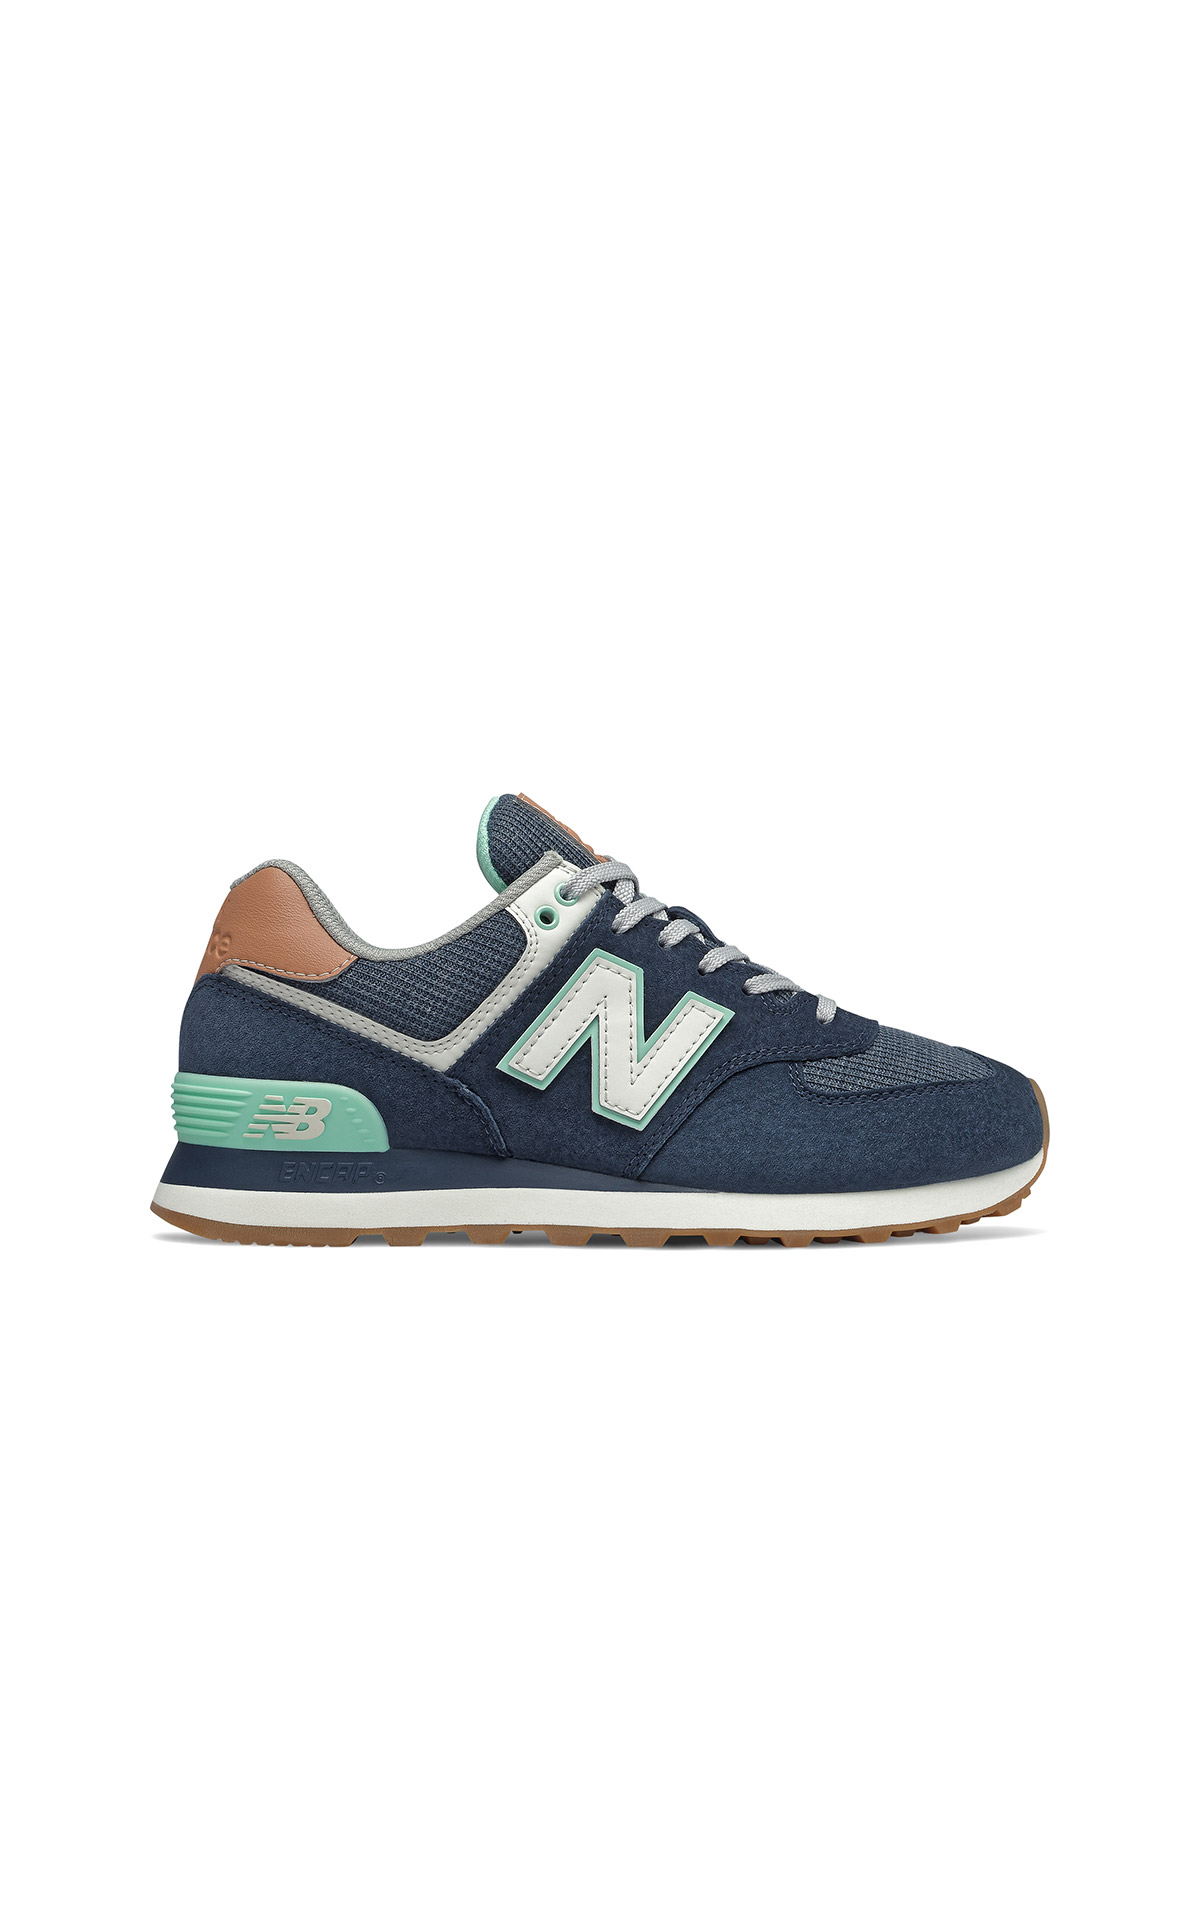 Blue and green sneakers new balance